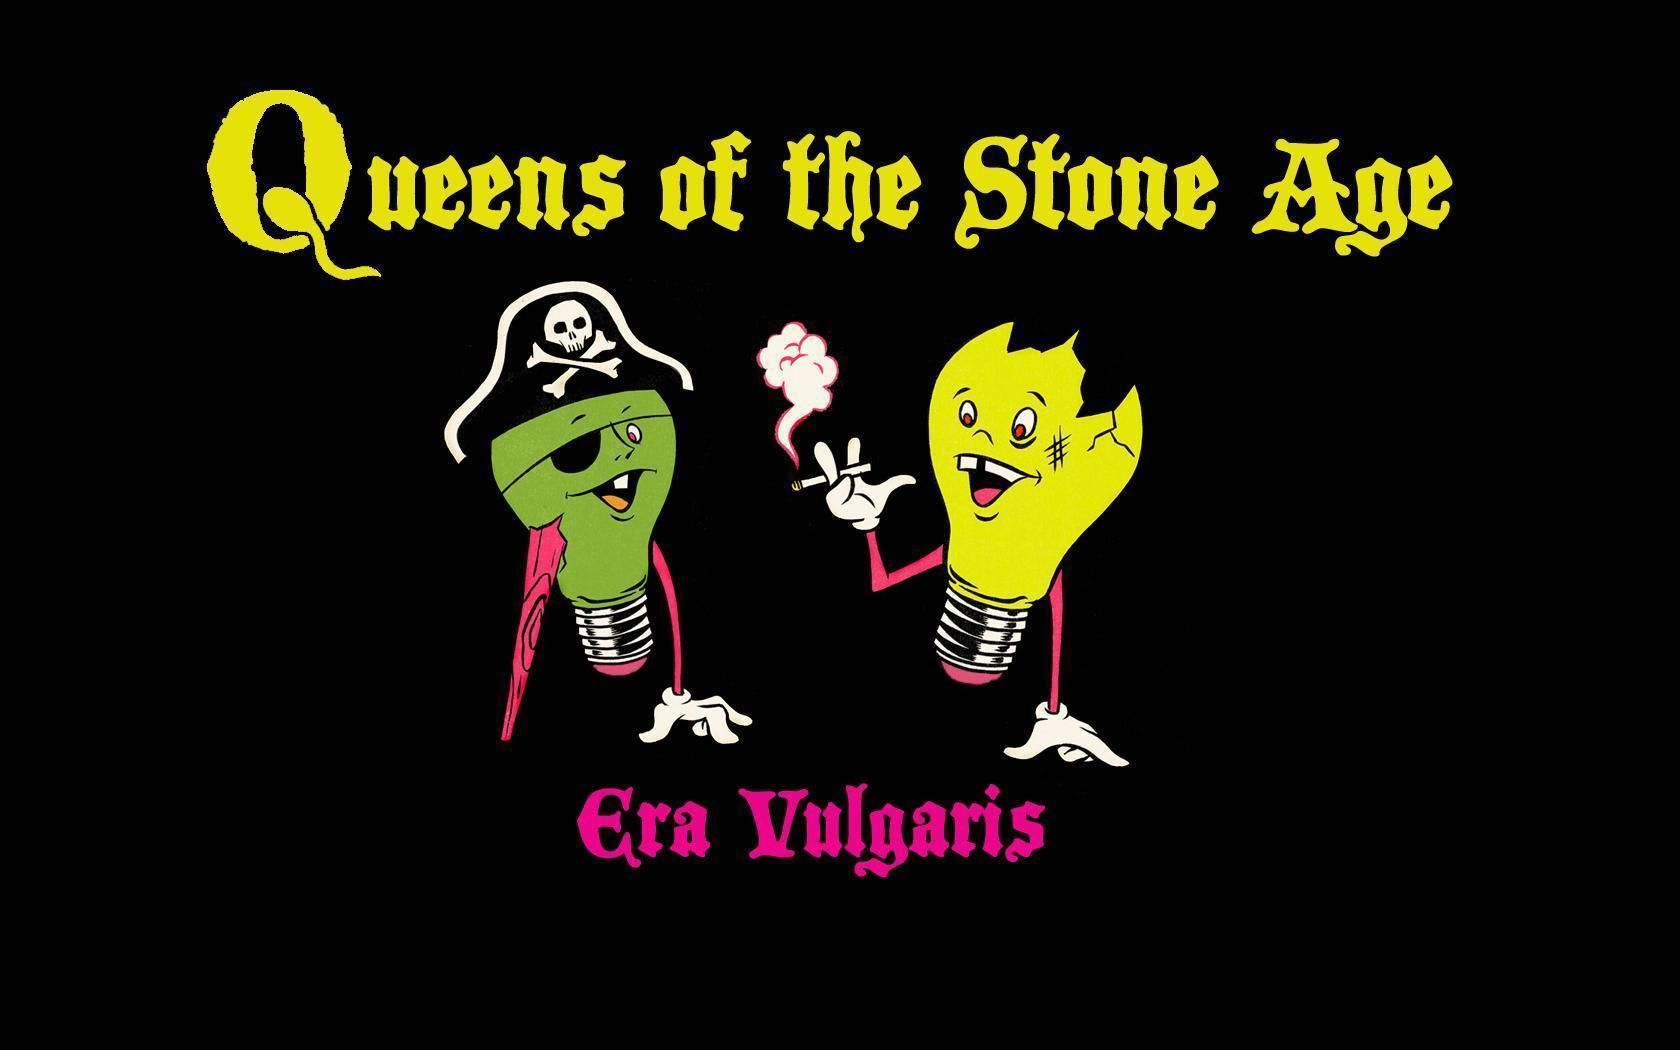 Images For Queens Of The Stone Age Iphone Wallpaper Co Hinh ảnh